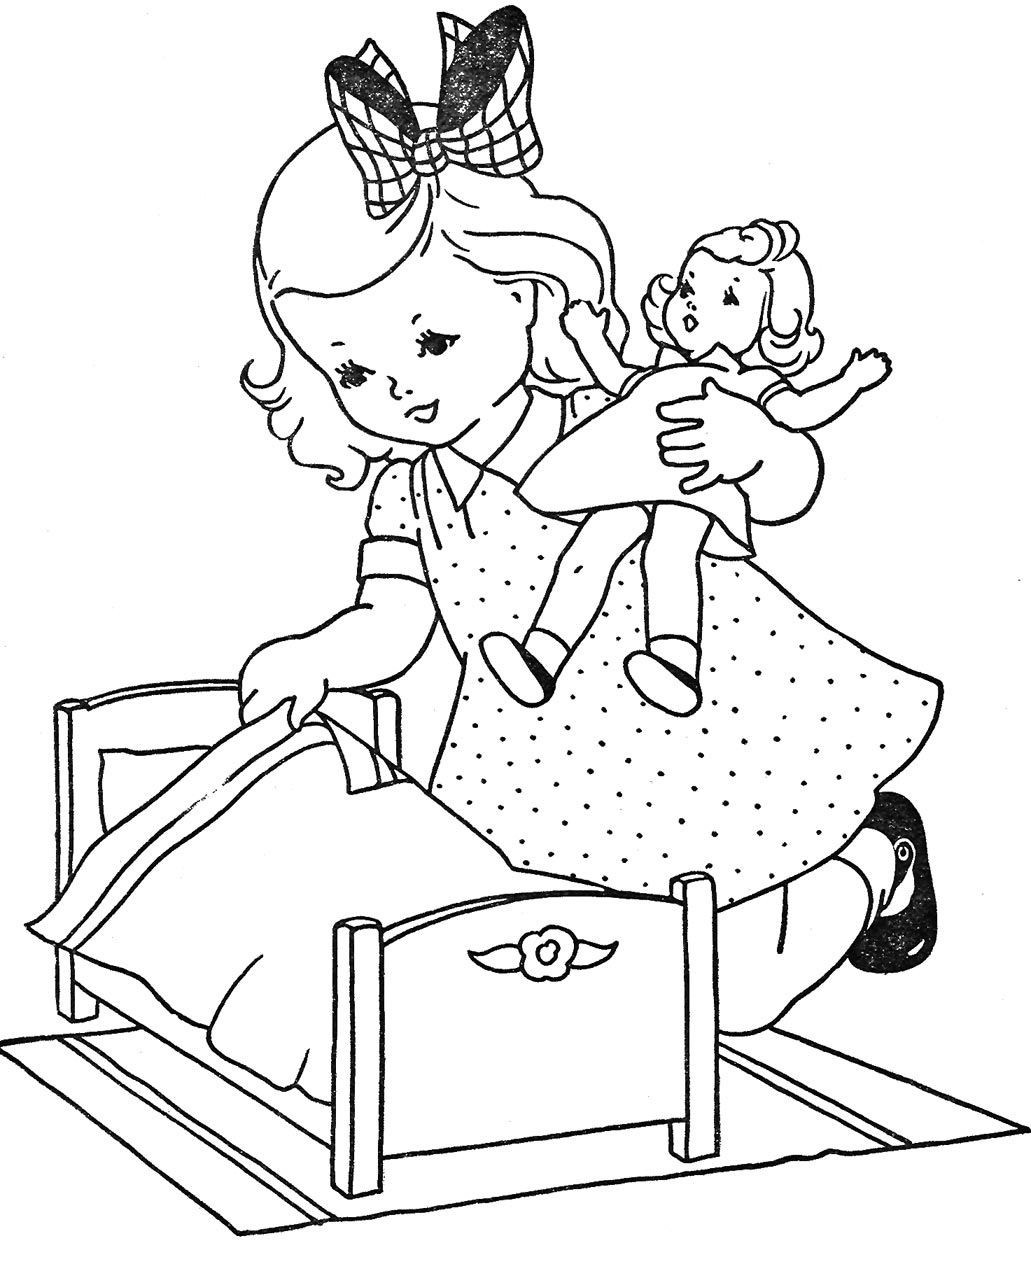 Cute Coloring Pages For Boys  Cute coloring pages for girls and boys Double click on